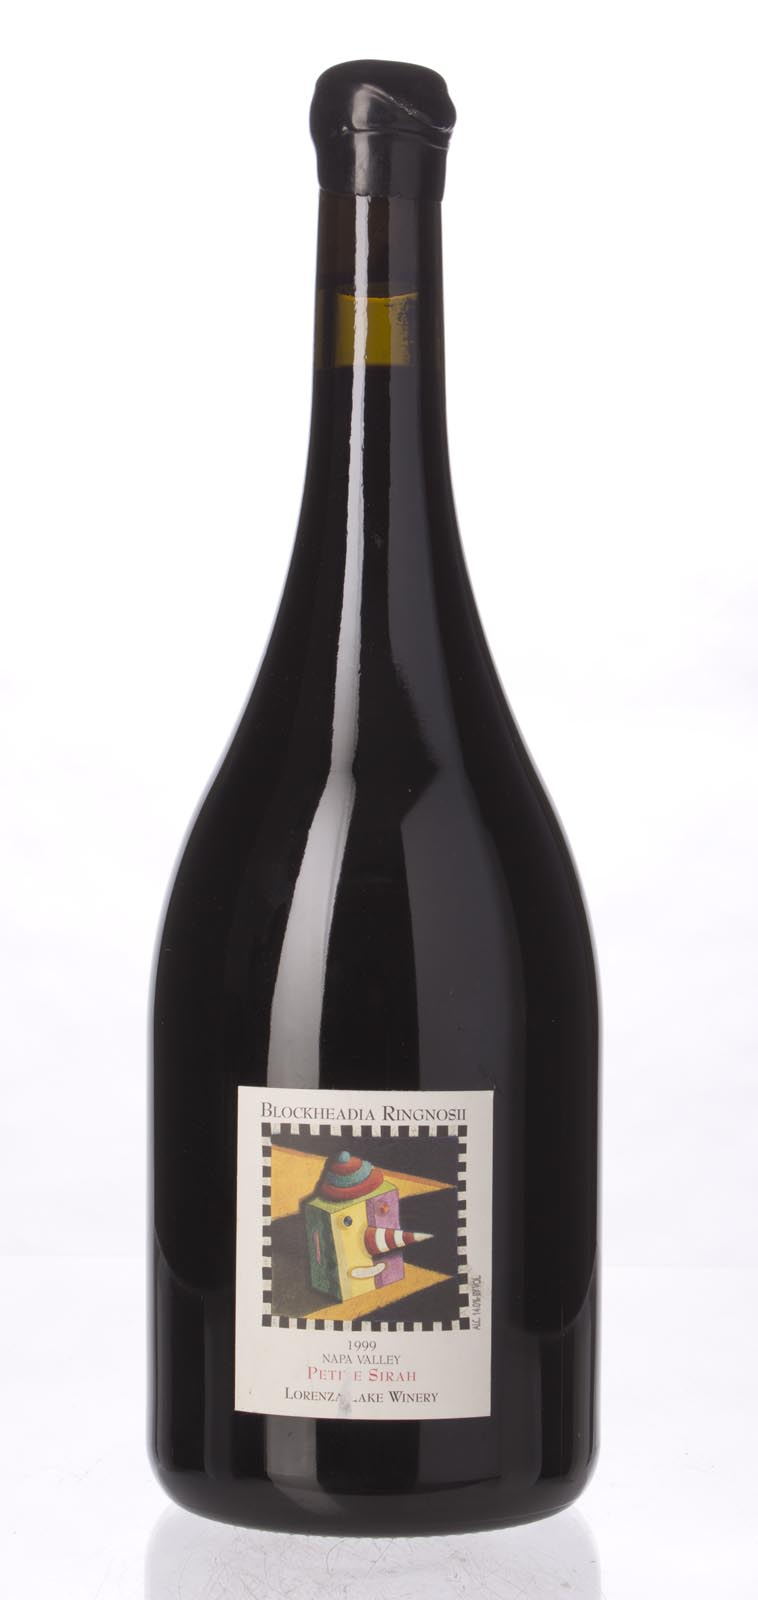 Blockheadia Ringnosi Petite Sirah Lorenza Lake Winery 1999, 1.5L () from The BPW - Merchants of rare and fine wines.